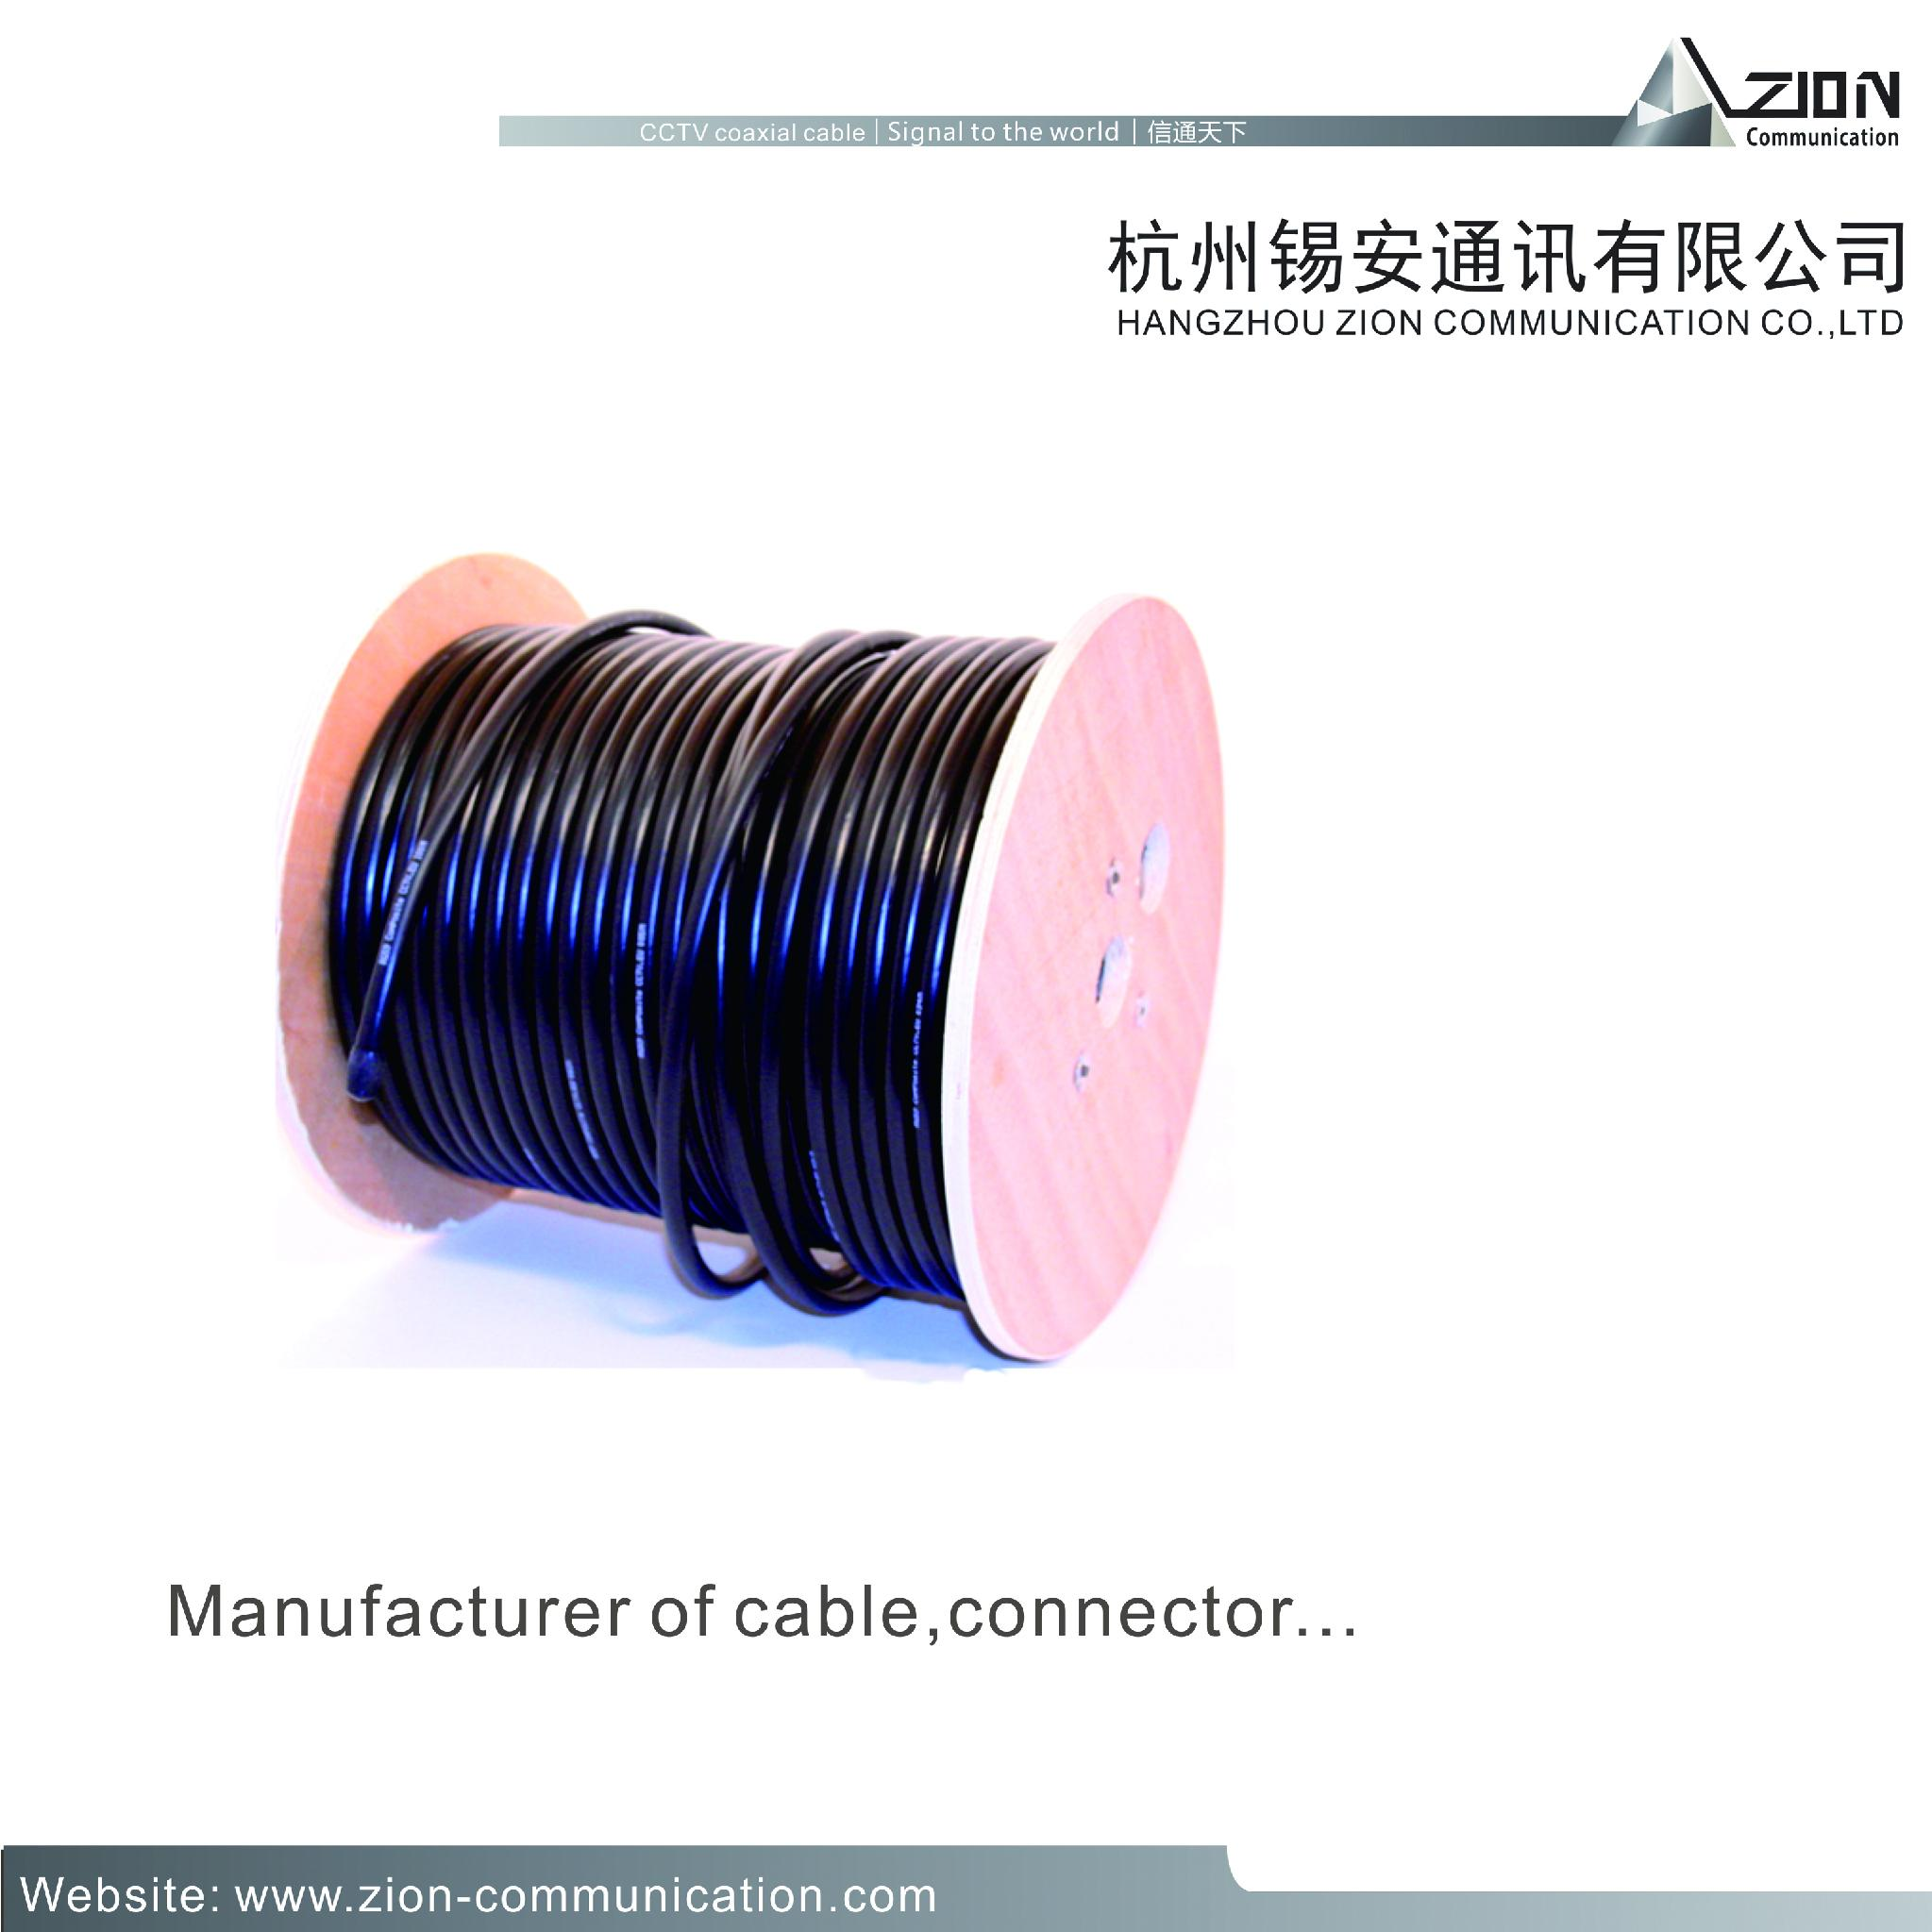 RG59 B/U - Clark Wire & Cable 0.64BC SPE 95% CCA 6.0 PVC coaxial cable supplier 6